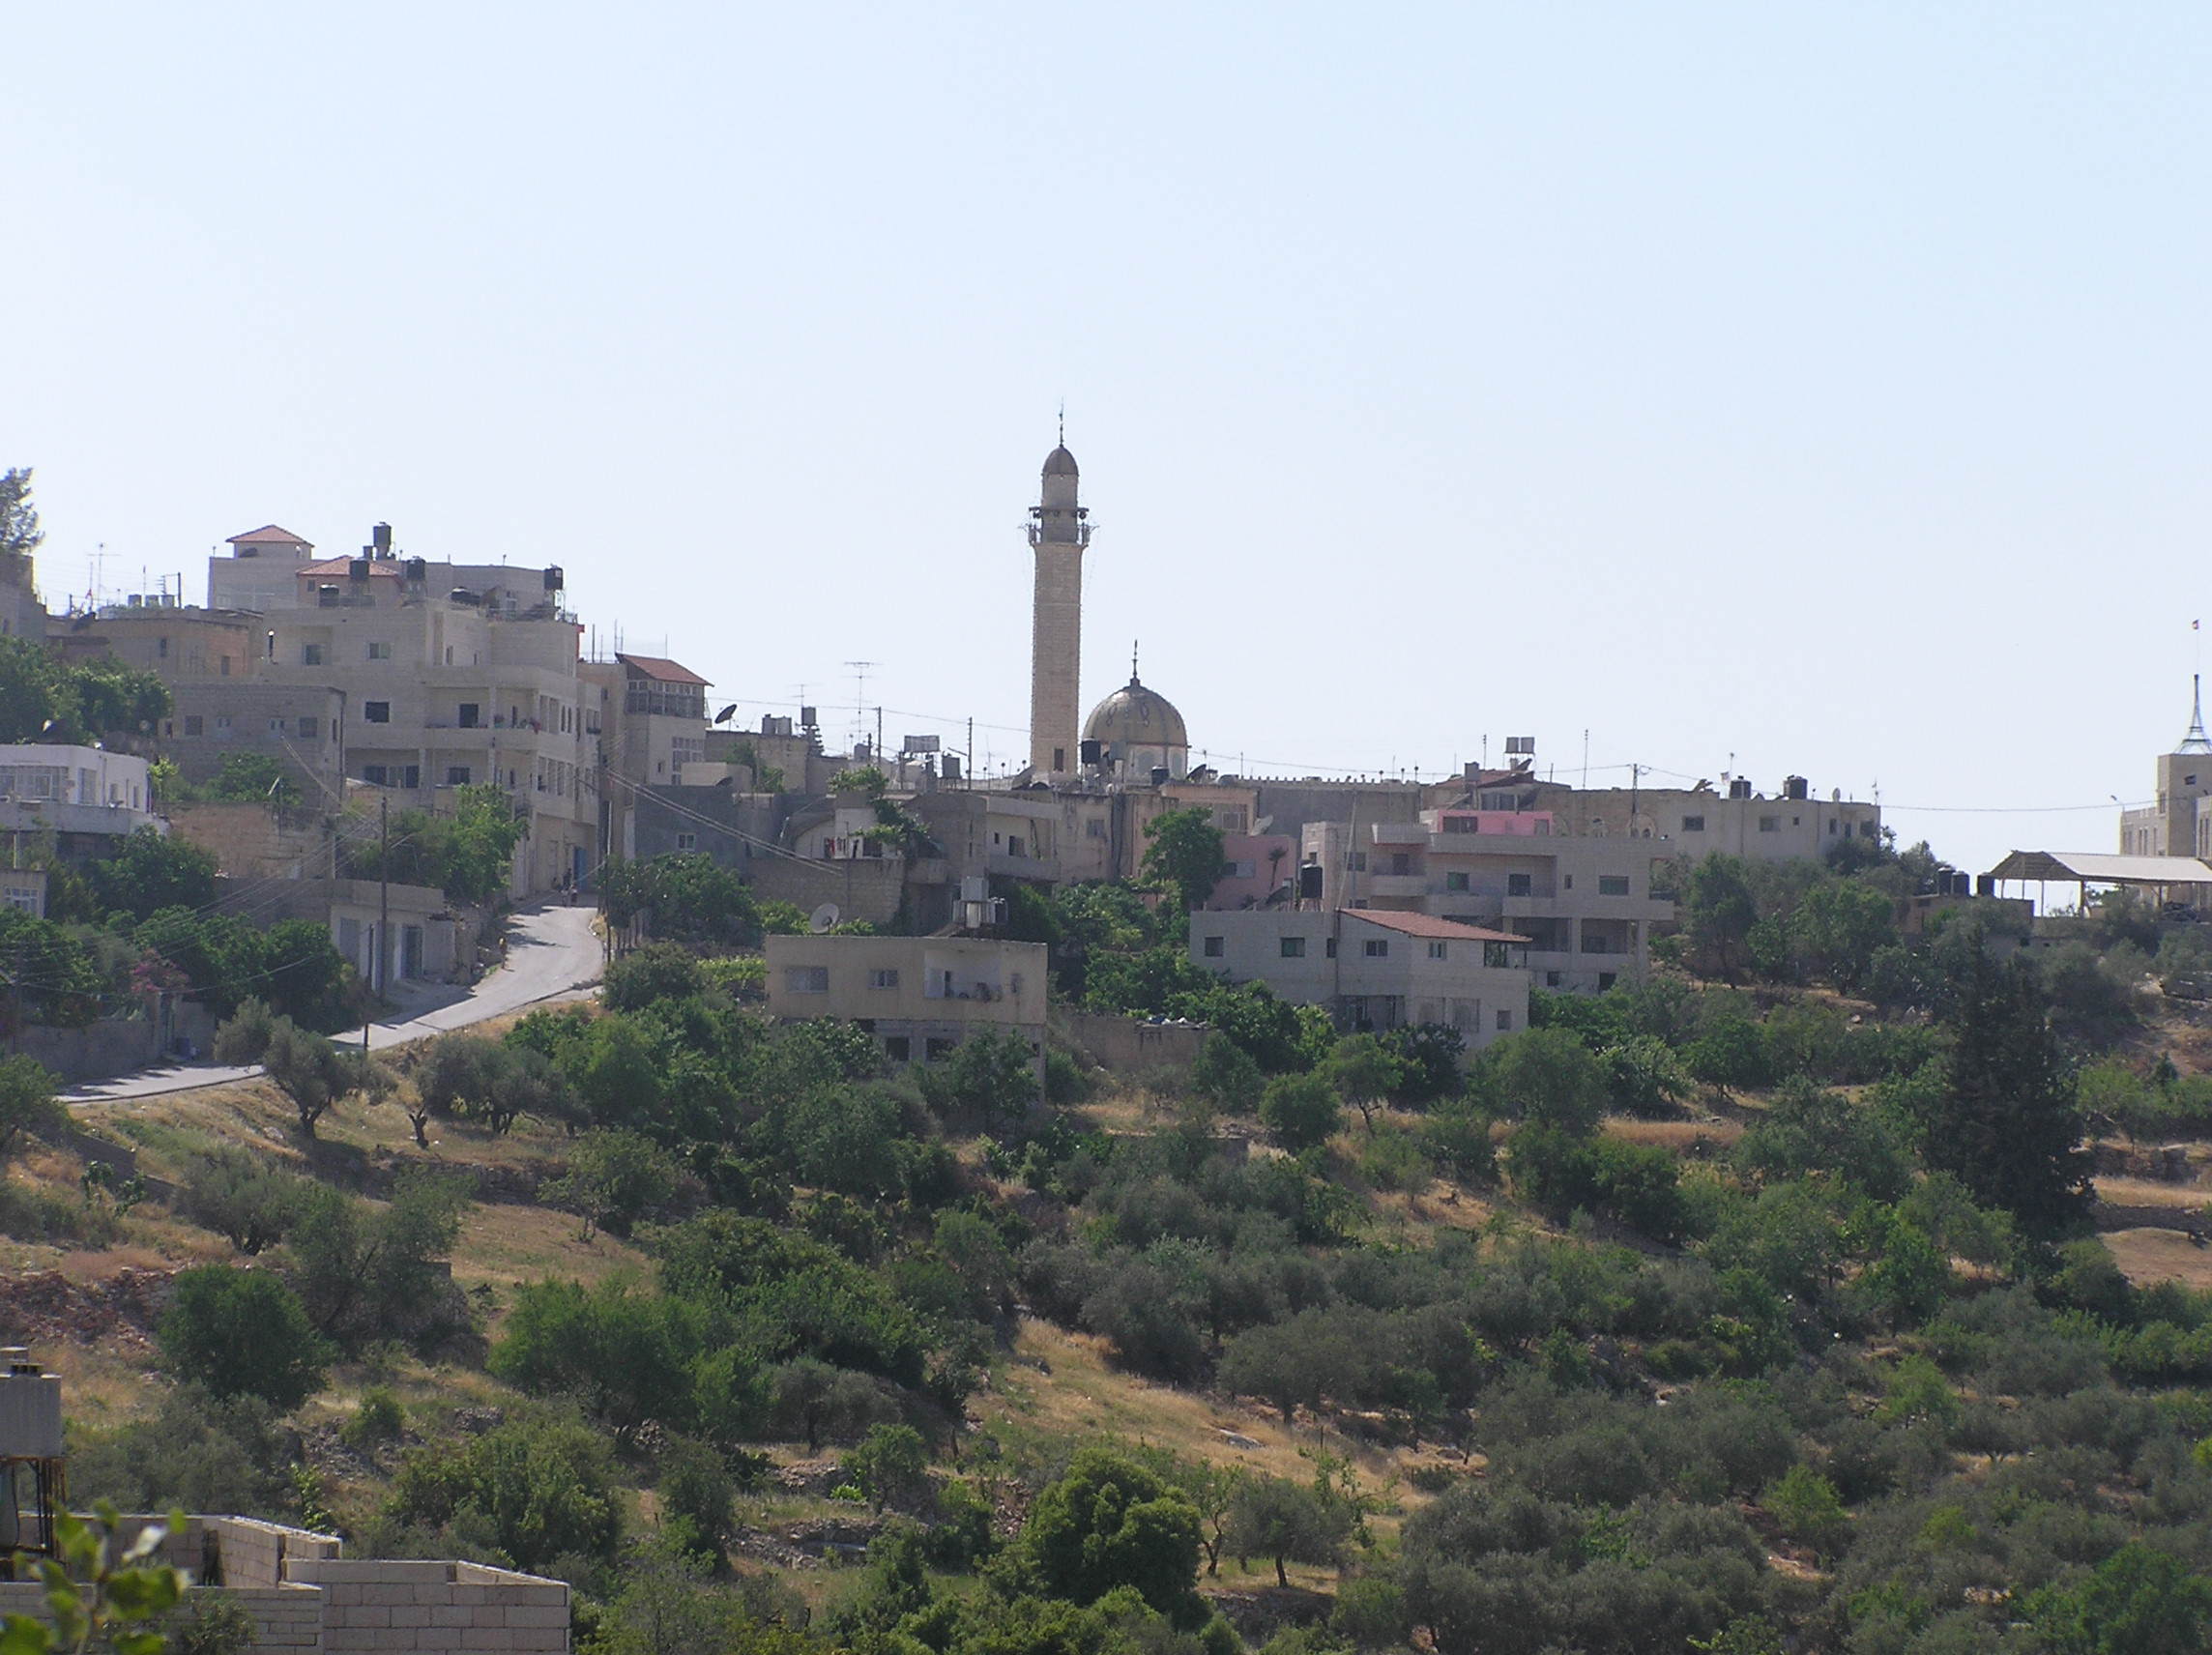 Bayt I'nan - بيت عنان : Beit I'nan - A General View From Its Surrounding Hills.